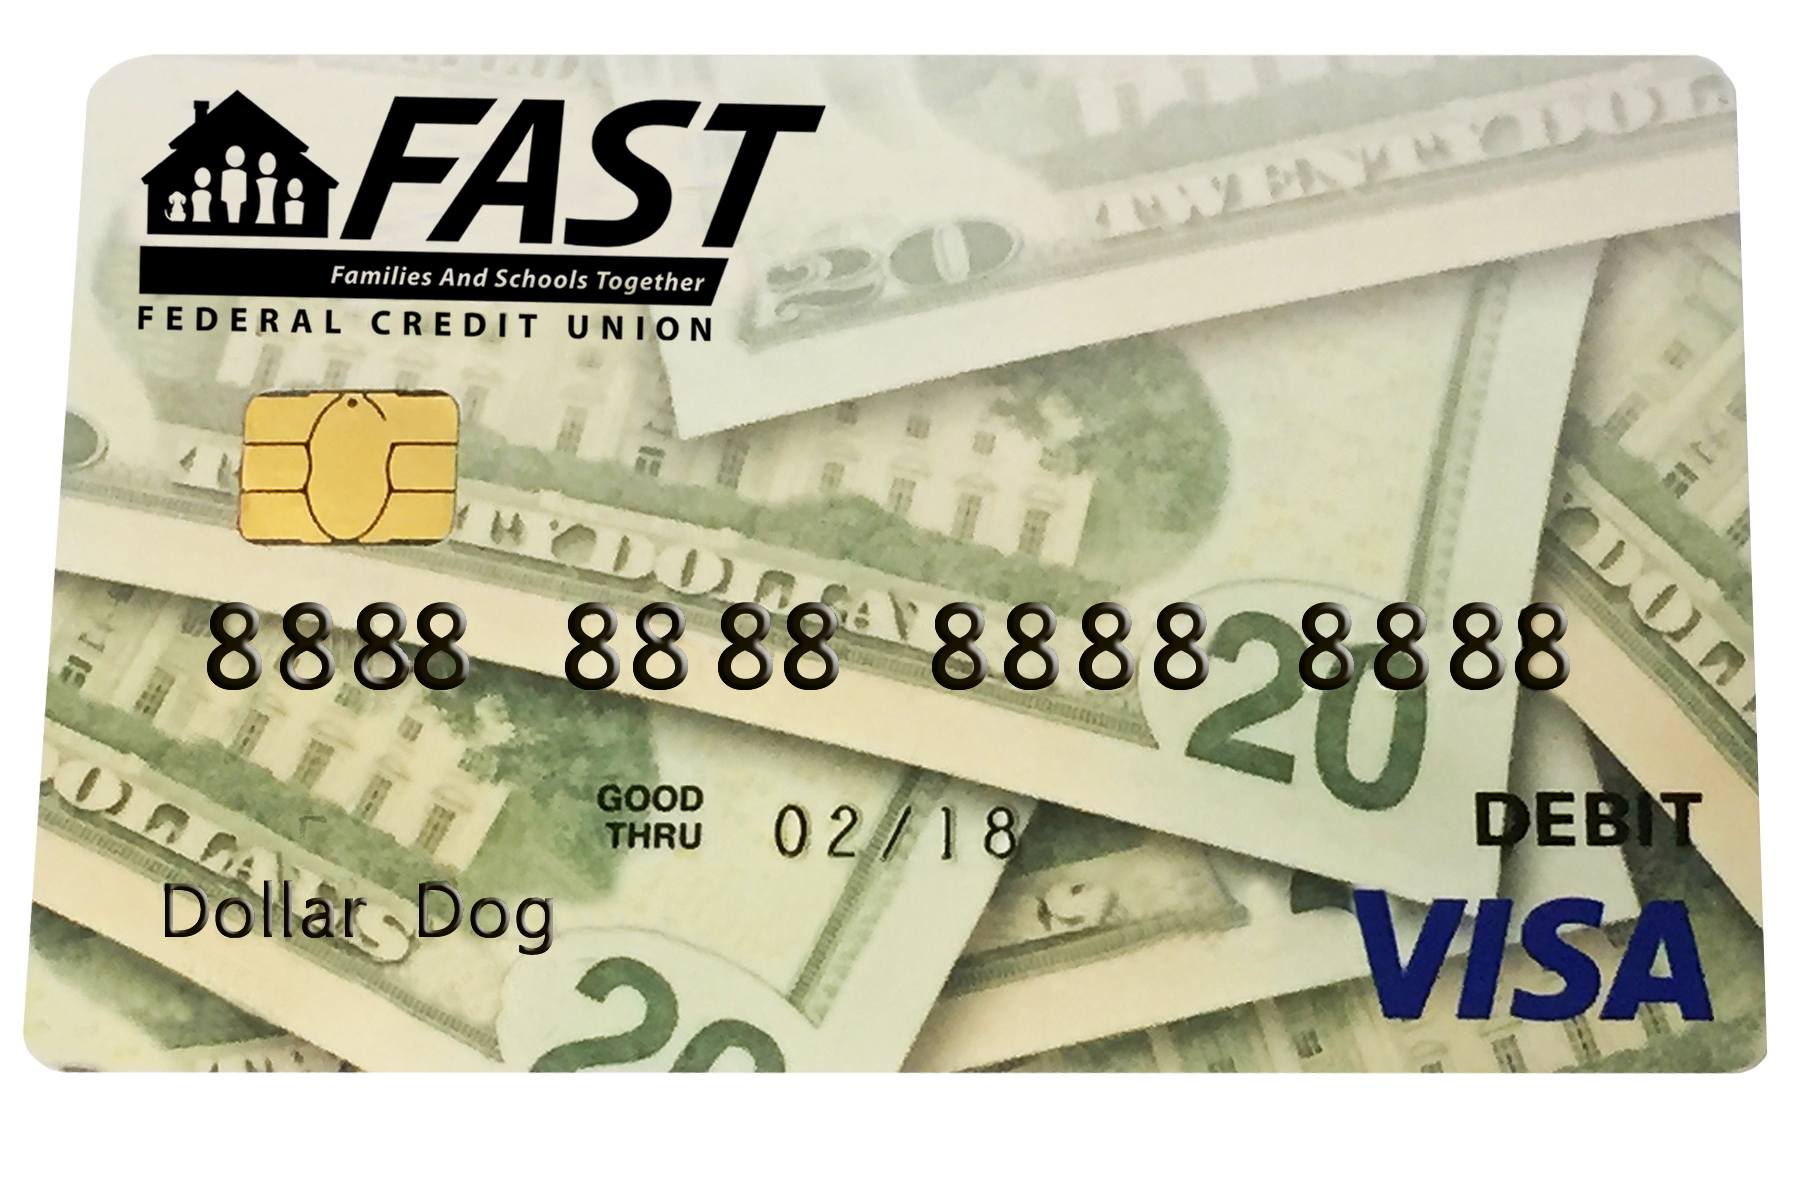 FAST Visa Chip Debit Card is now available. The new chip card makes each transaction safer and more secure. Each time your new chip debit or credit card is used at a chip-terminal, a unique one-time code is generated that is used to approve the transaction. This feature makes it virtually impossible to duplicate counterfeit cards. The chip also helps to secure your personal information, with the chip only generating the unqiue code and not sending any personal data to the retailer.